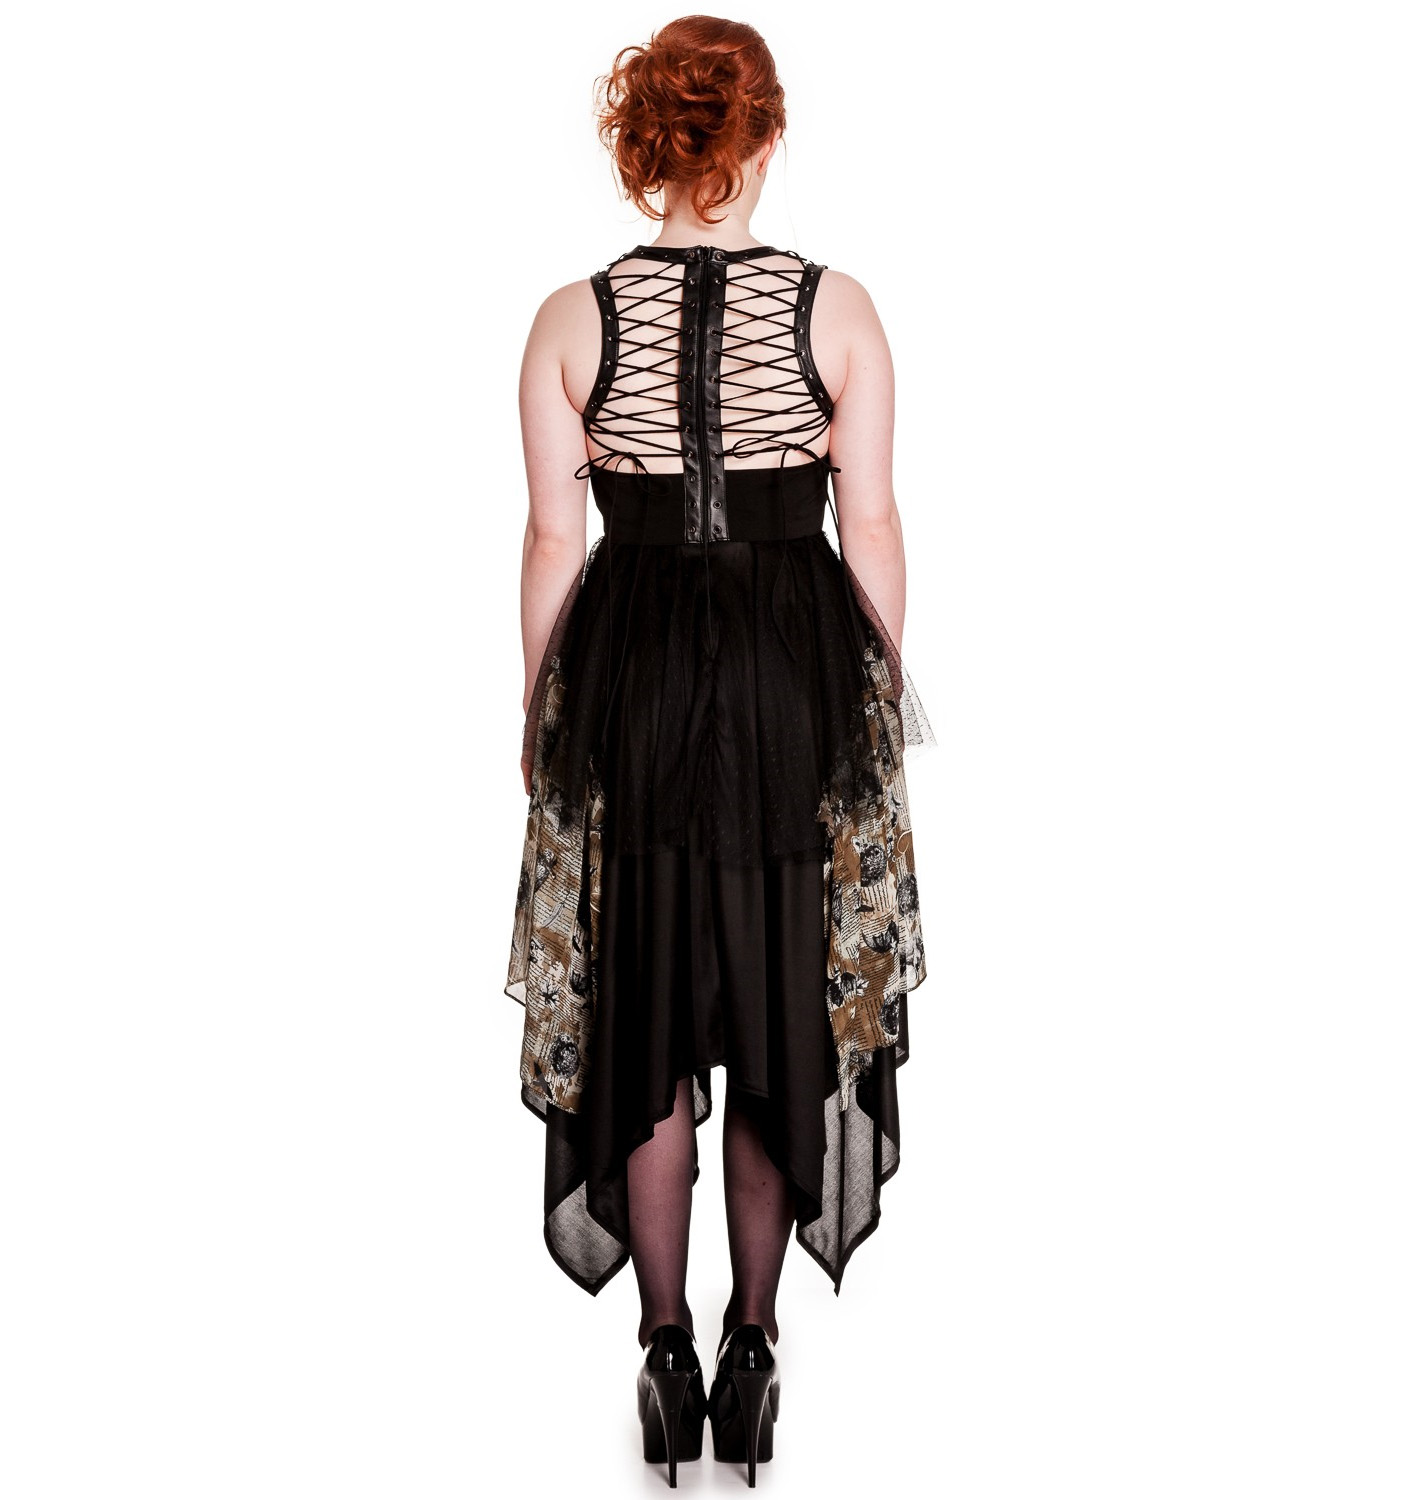 Hell-Bunny-Spin-Doctor-Goth-Black-Dress-ECLIPSE-Grunge-Steampunk-All-Sizes thumbnail 9